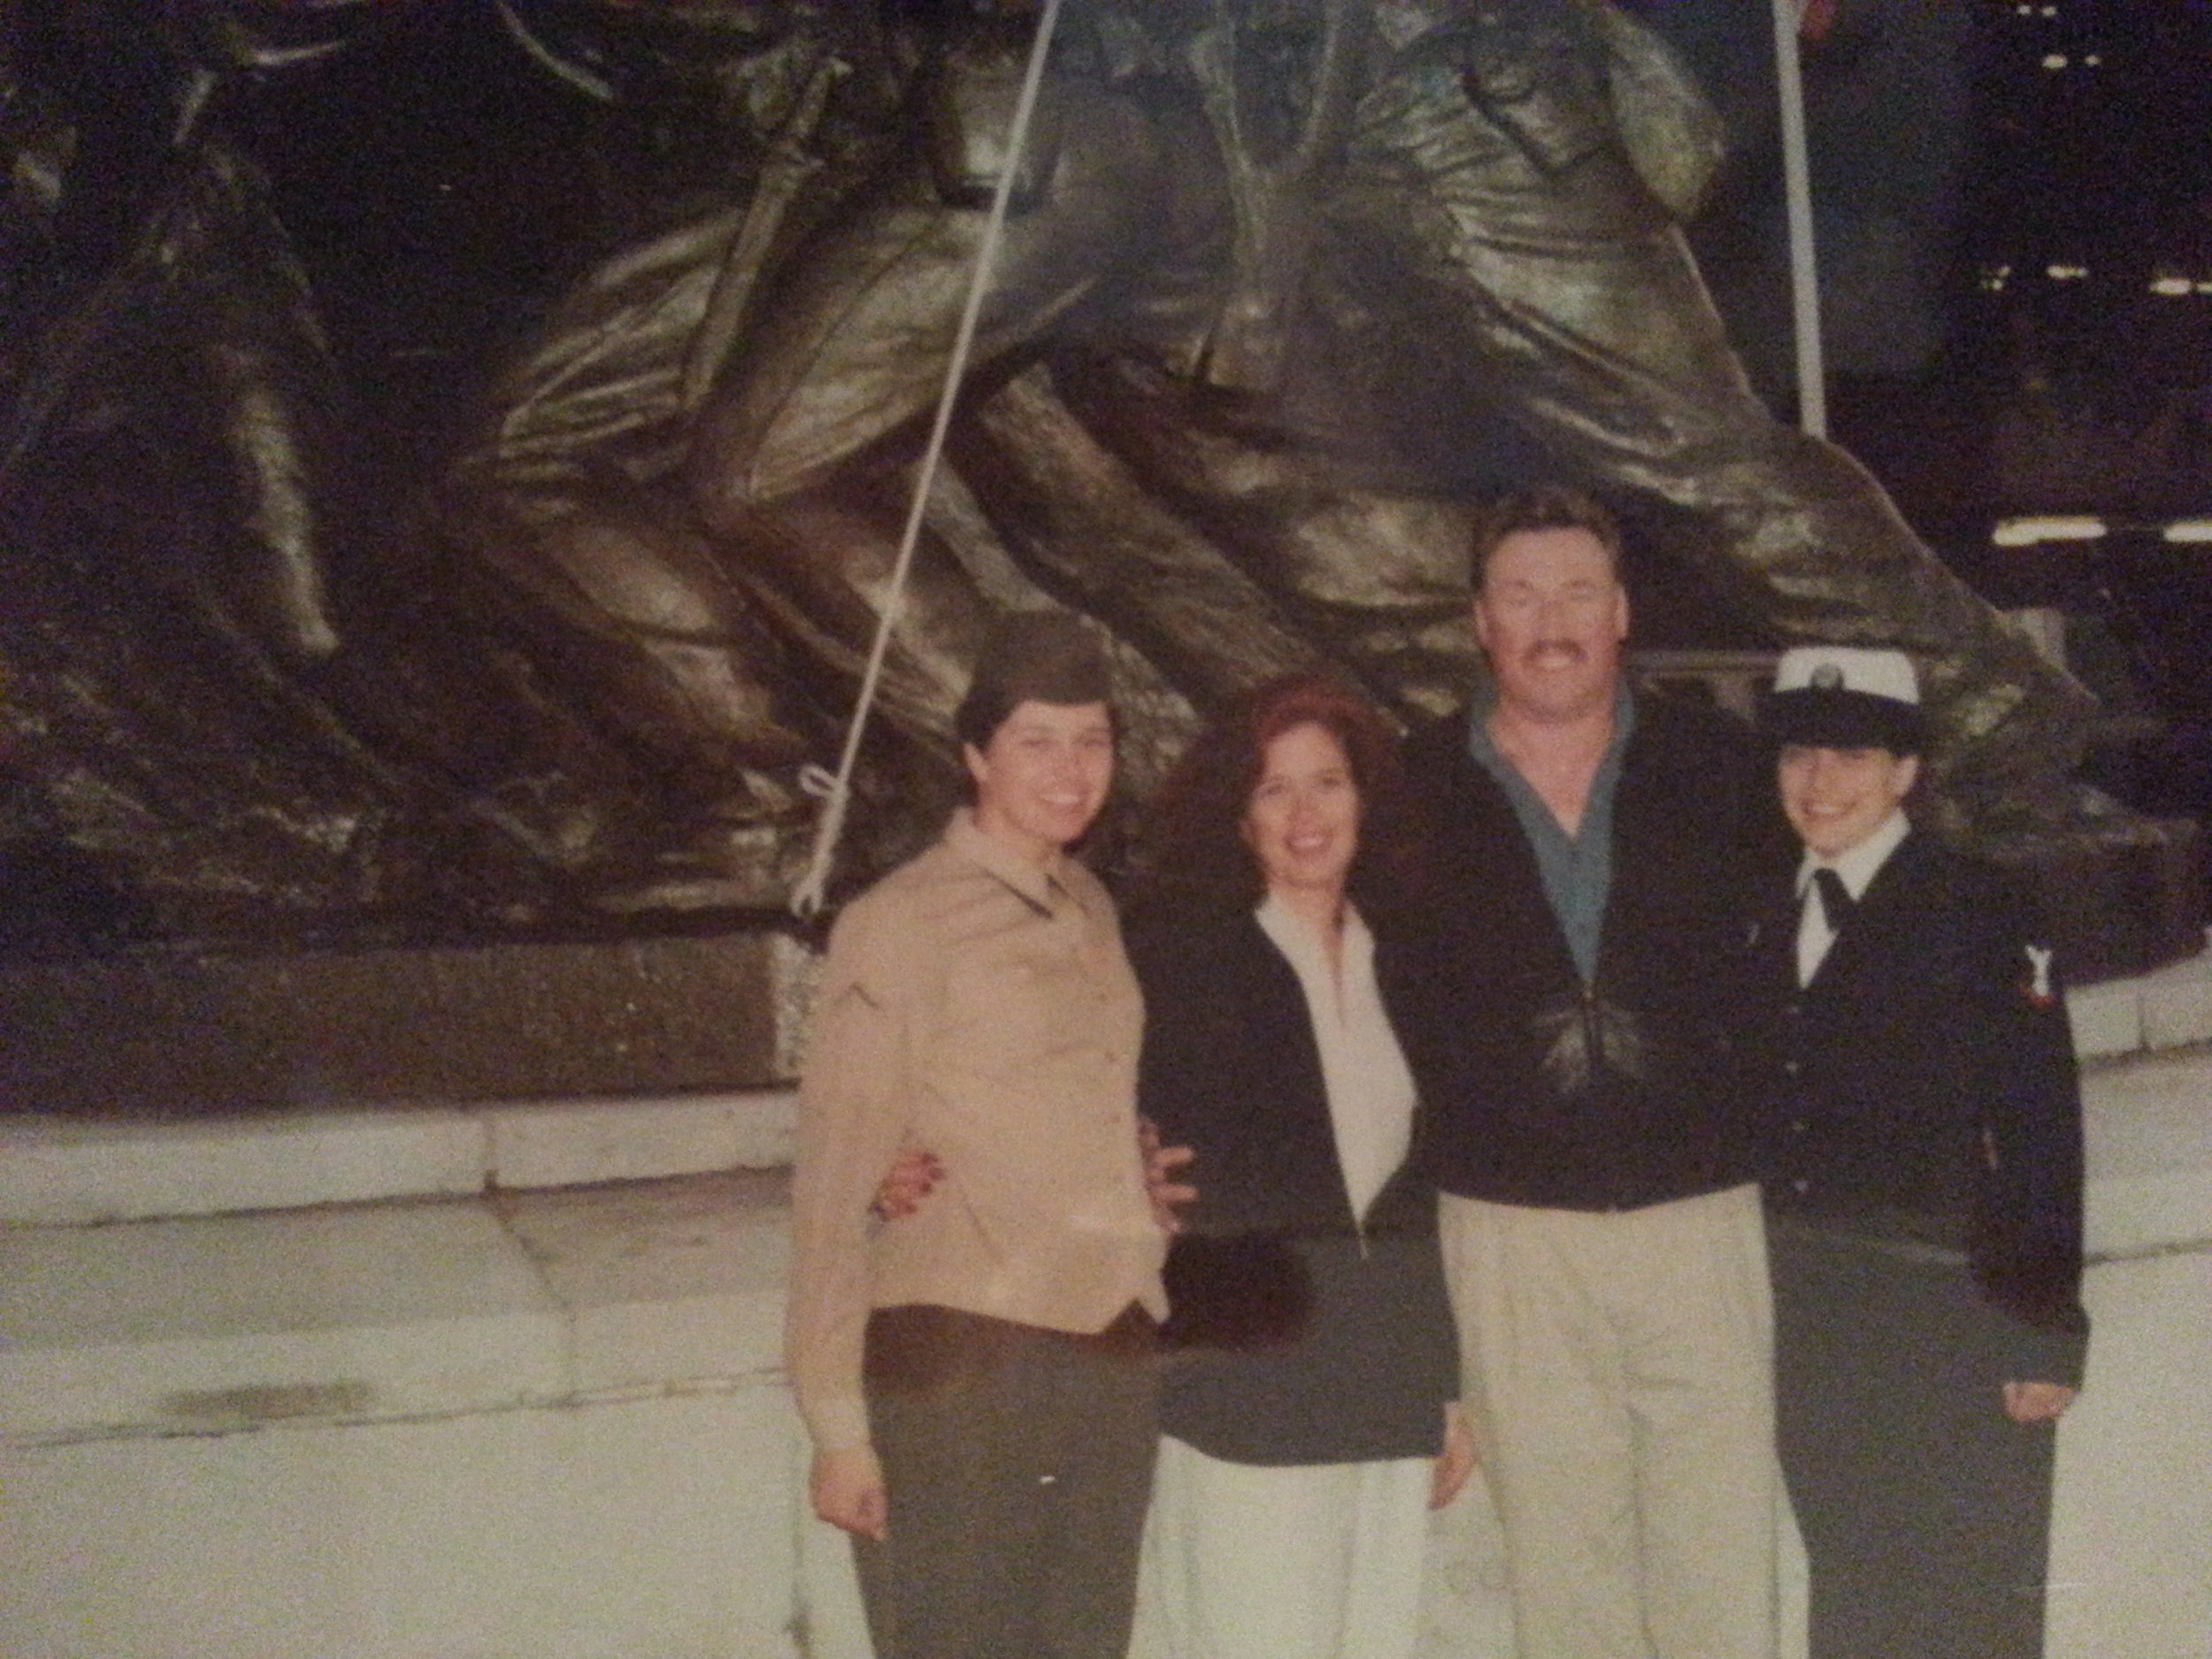 Boot Camp Graduation with my sister and parents